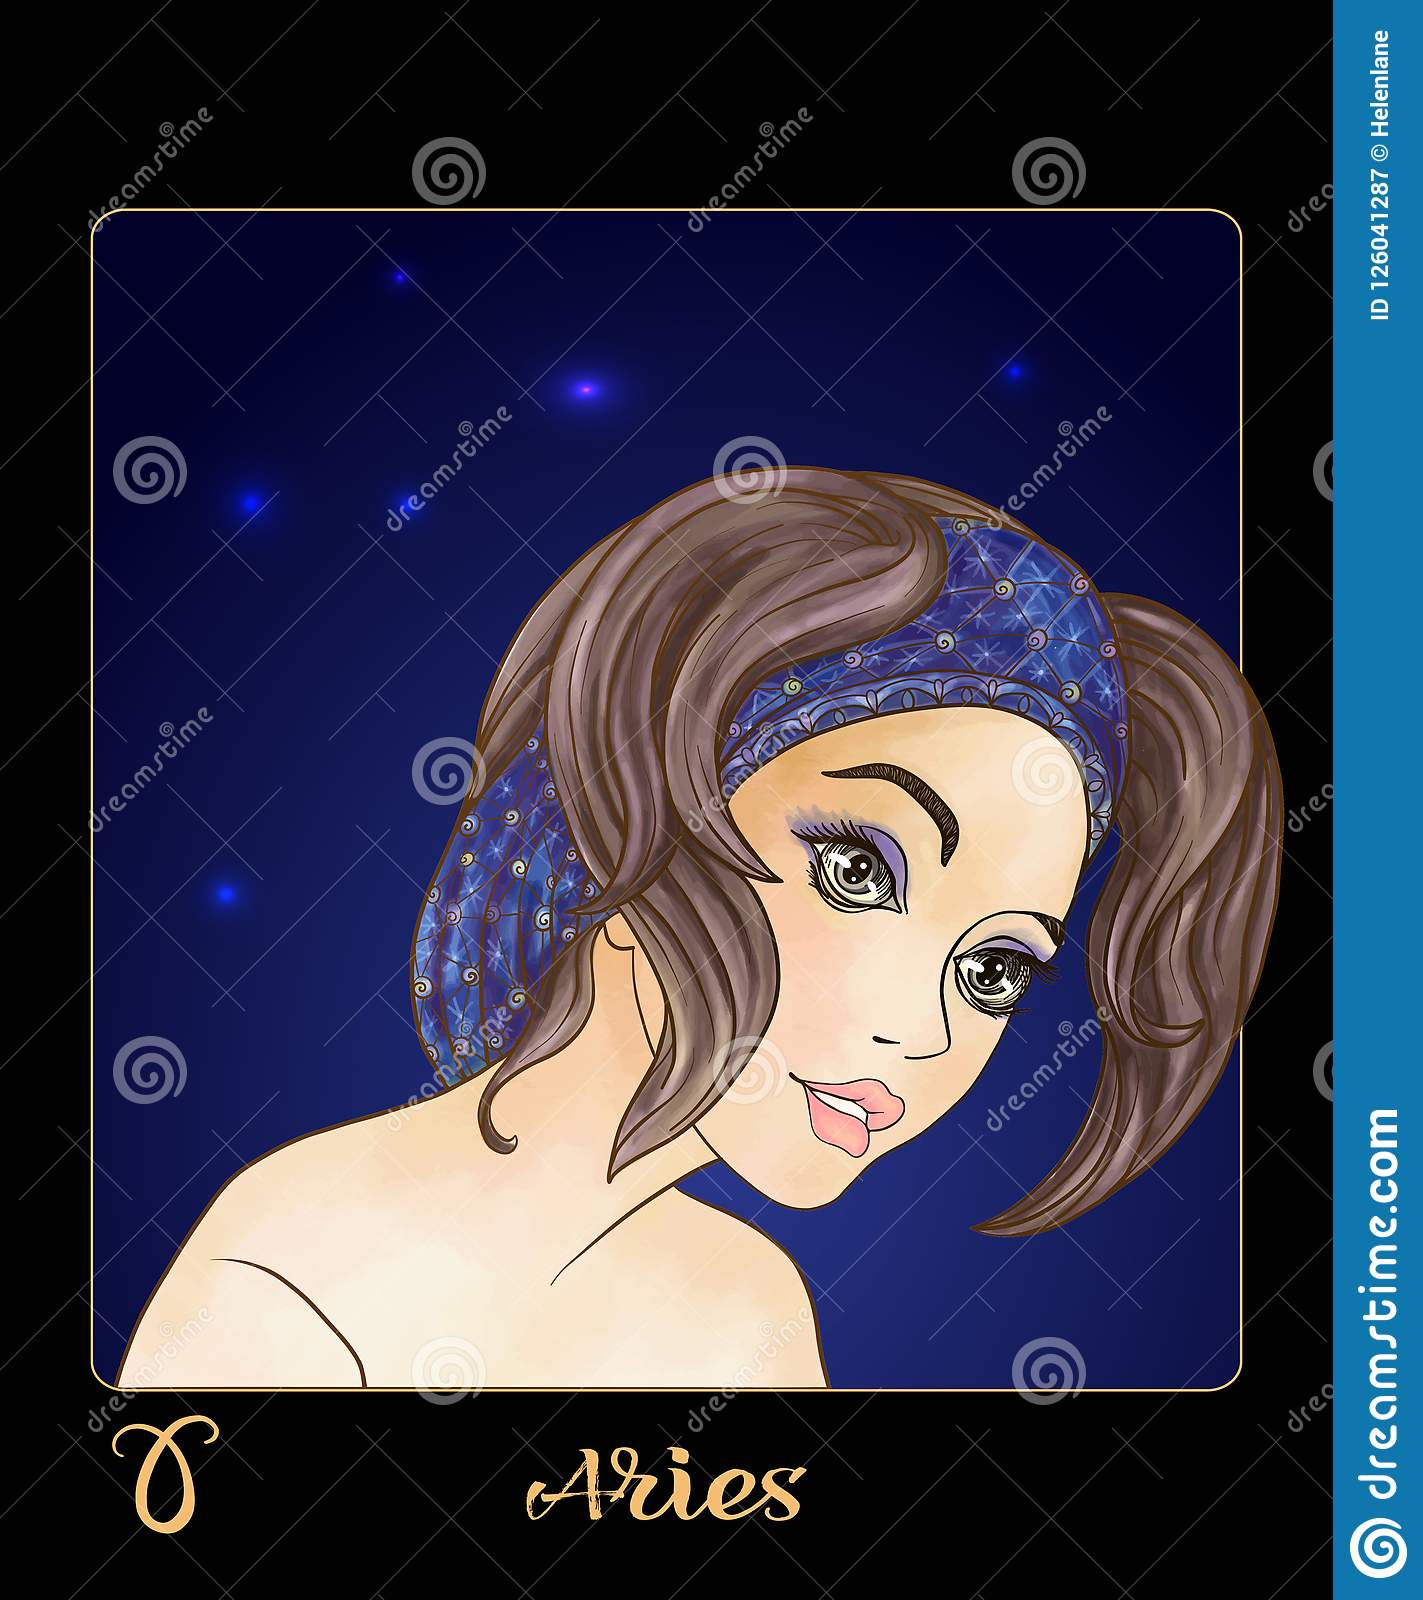 Aries Zodiac Sign  A Young Beautiful Girl In The Form Of One